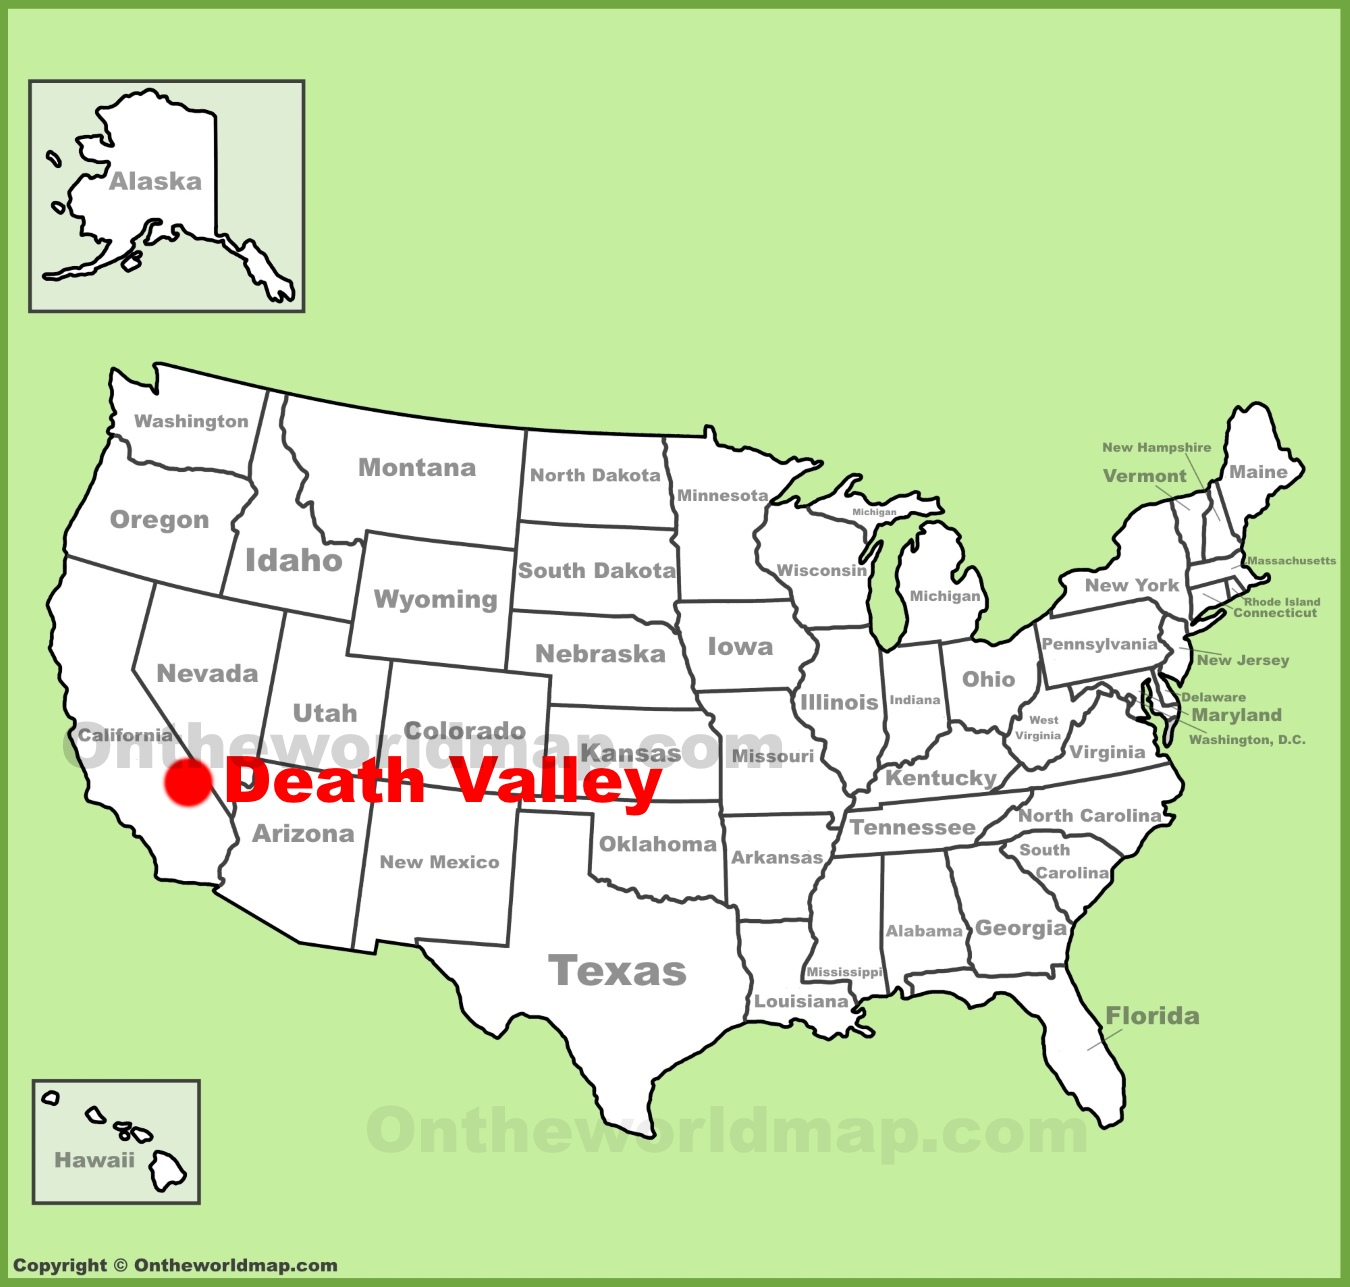 http://ontheworldmap.com/usa/national-park/death-valley/death-valley-location-on-the-us-map.jpg